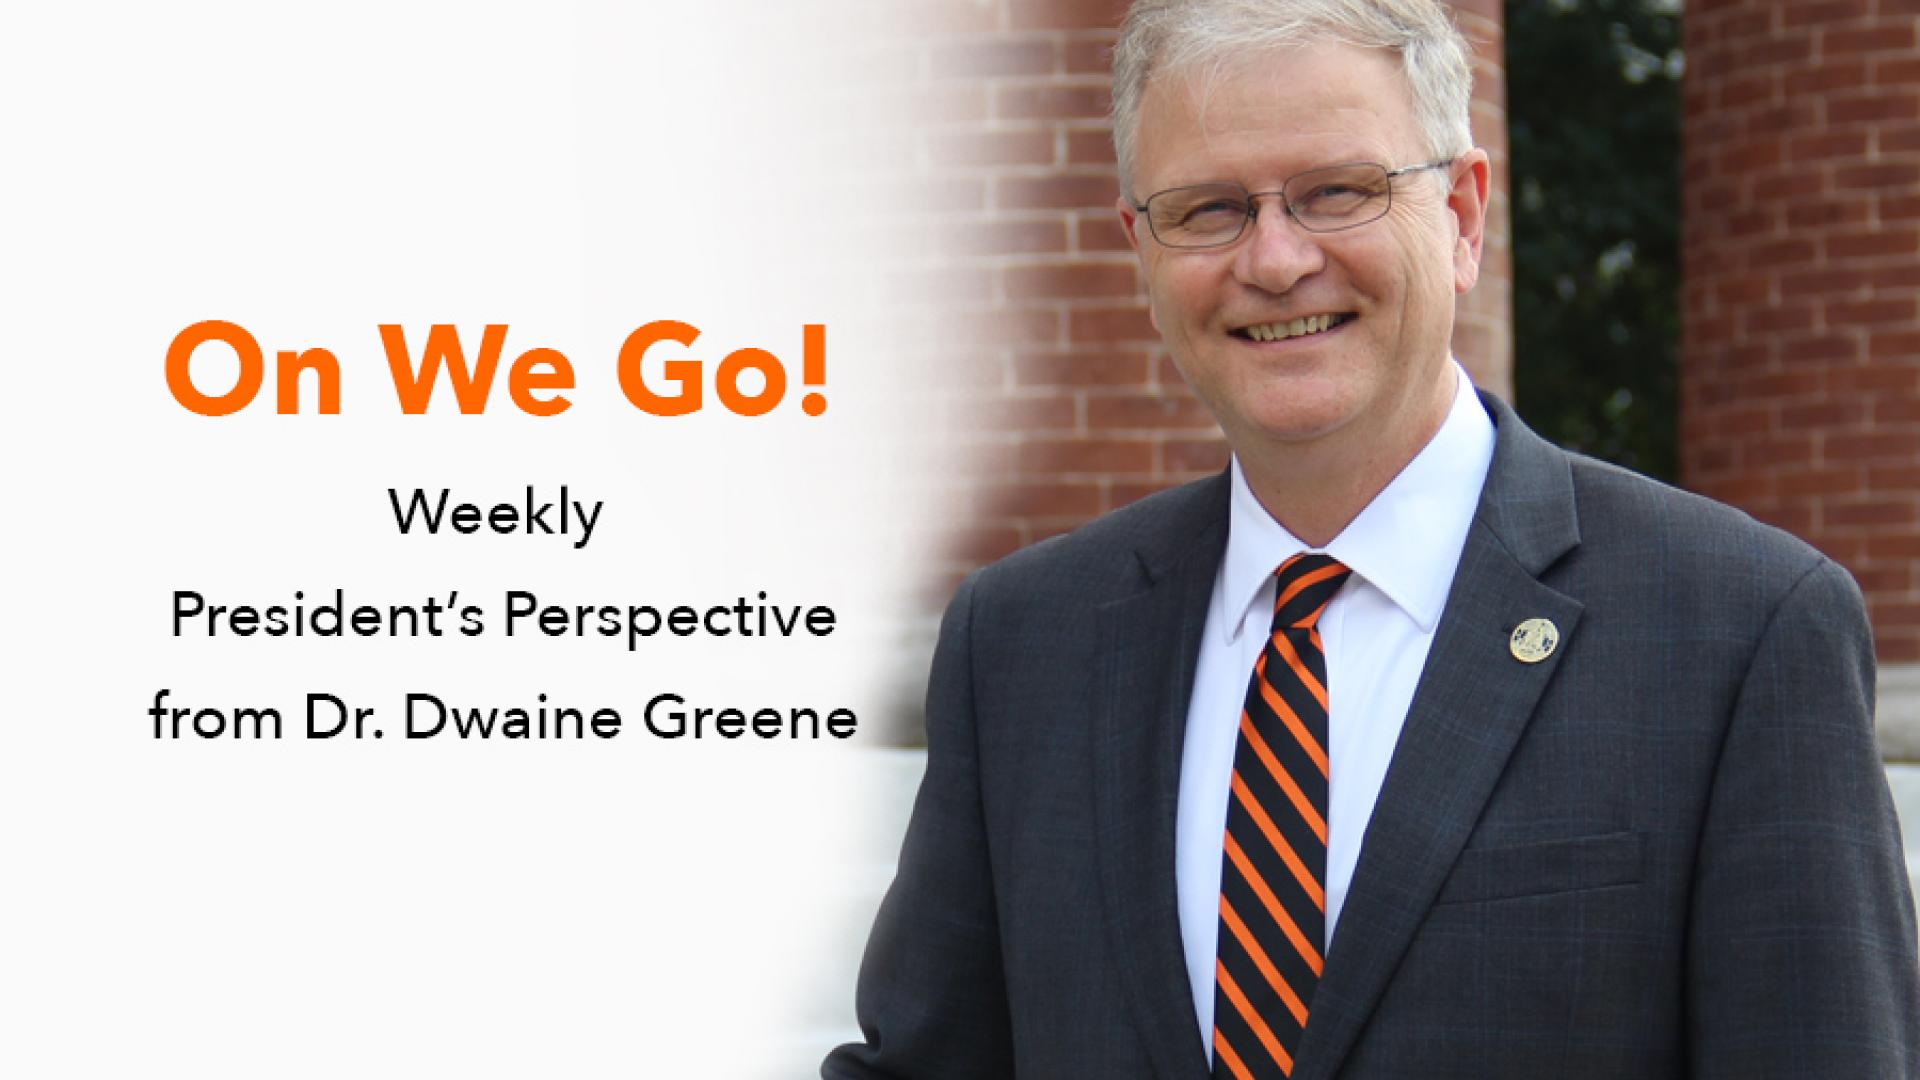 ON WE GO! - Weekly President's Perspective from Dr. Greene